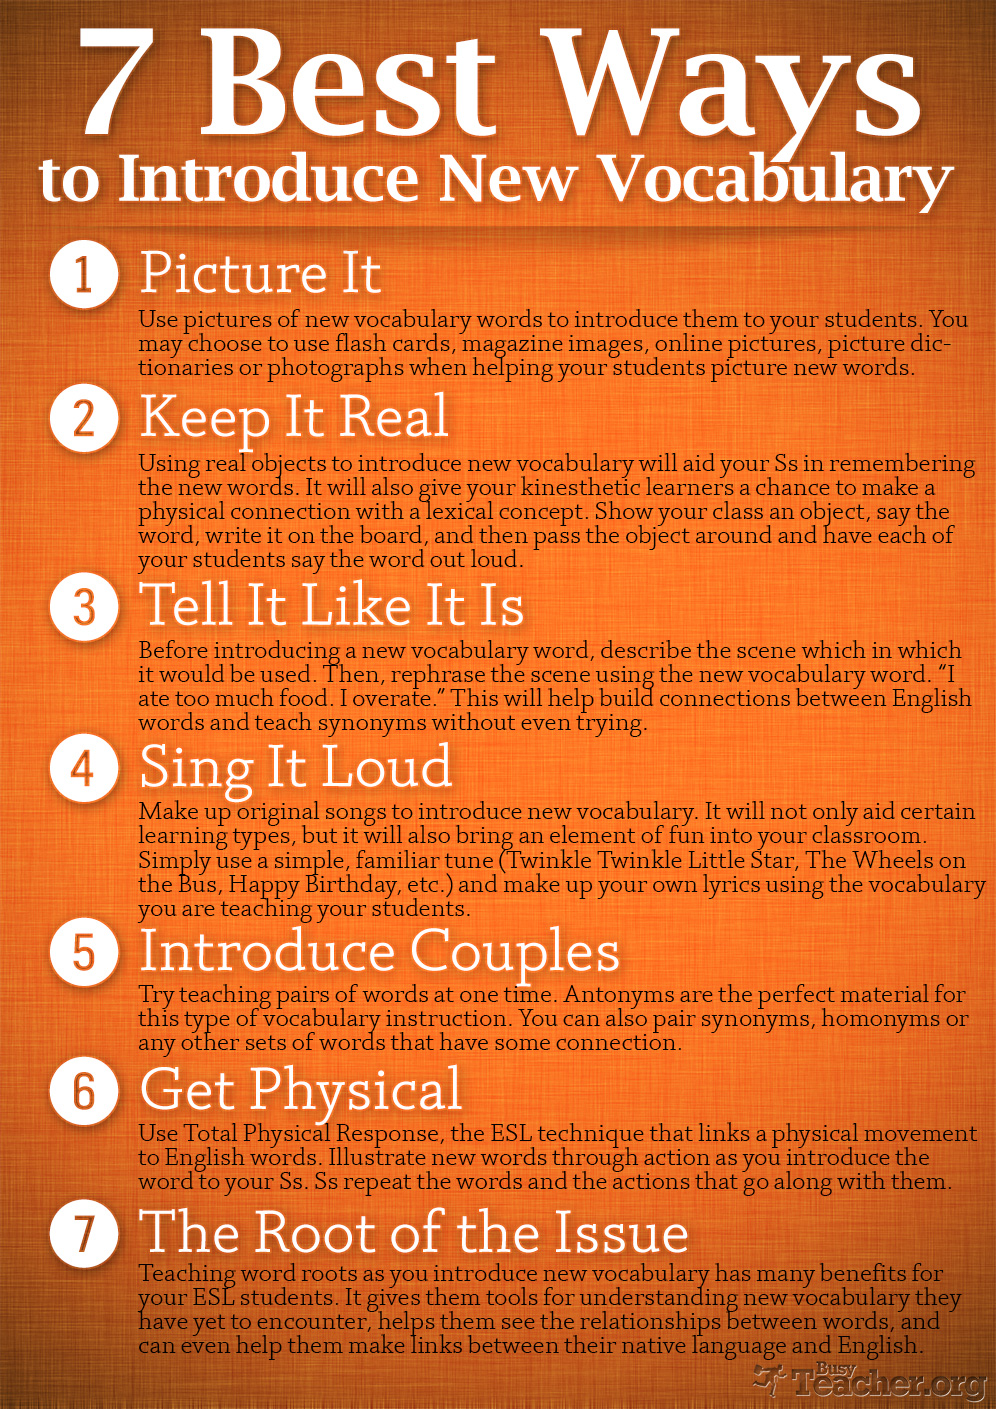 7 Best Ways to Introduce New Vocabulary: Poster